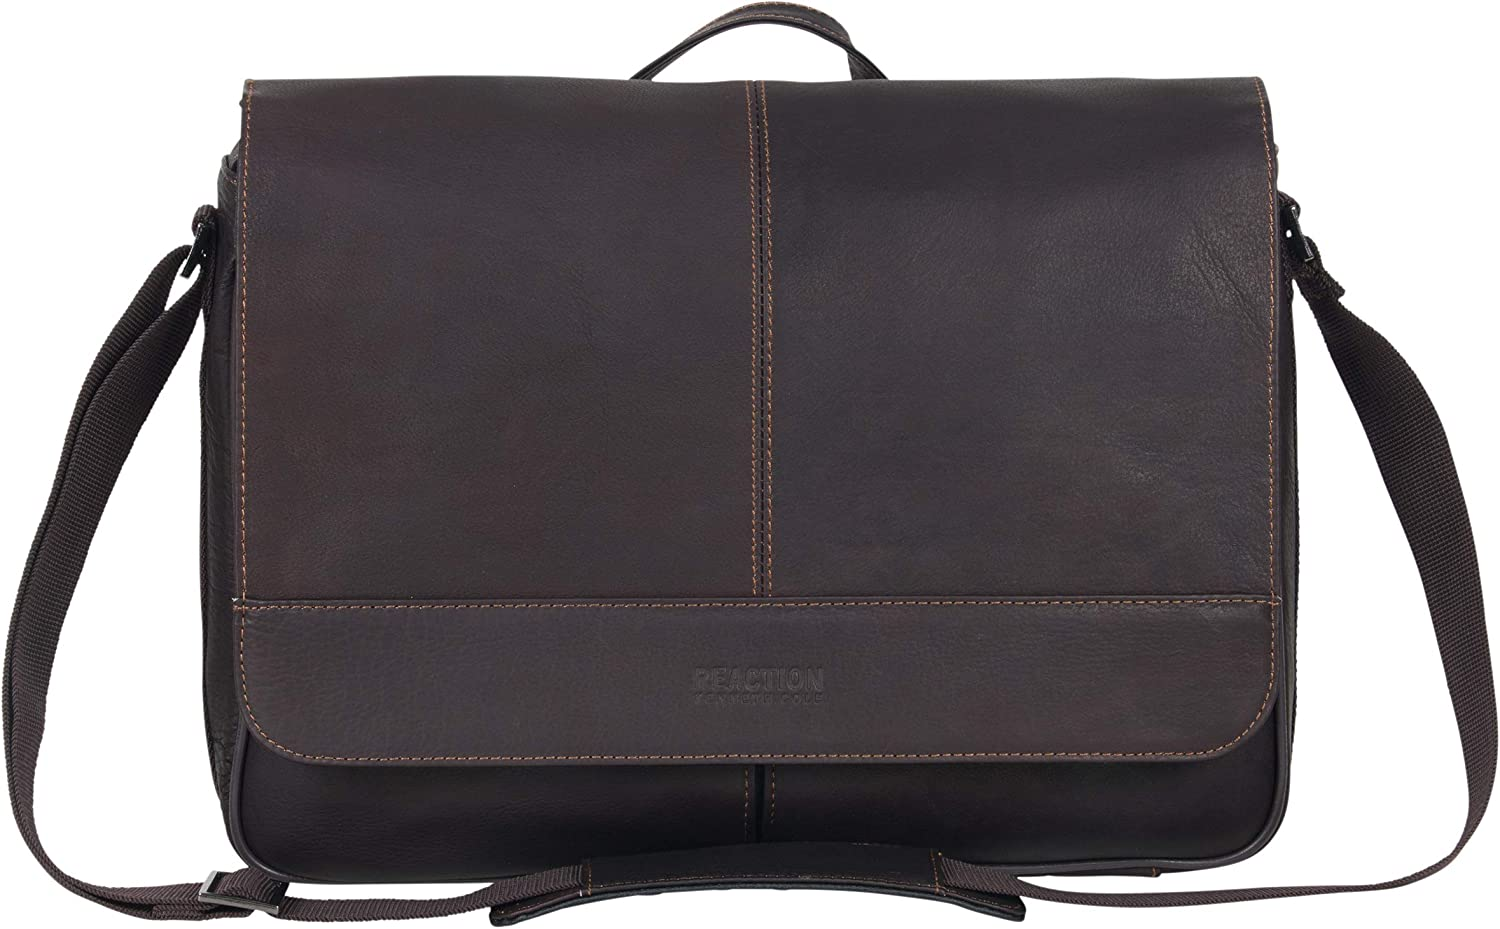 Kenneth Cole Reaction Laptop Messenger Bag, Cognac